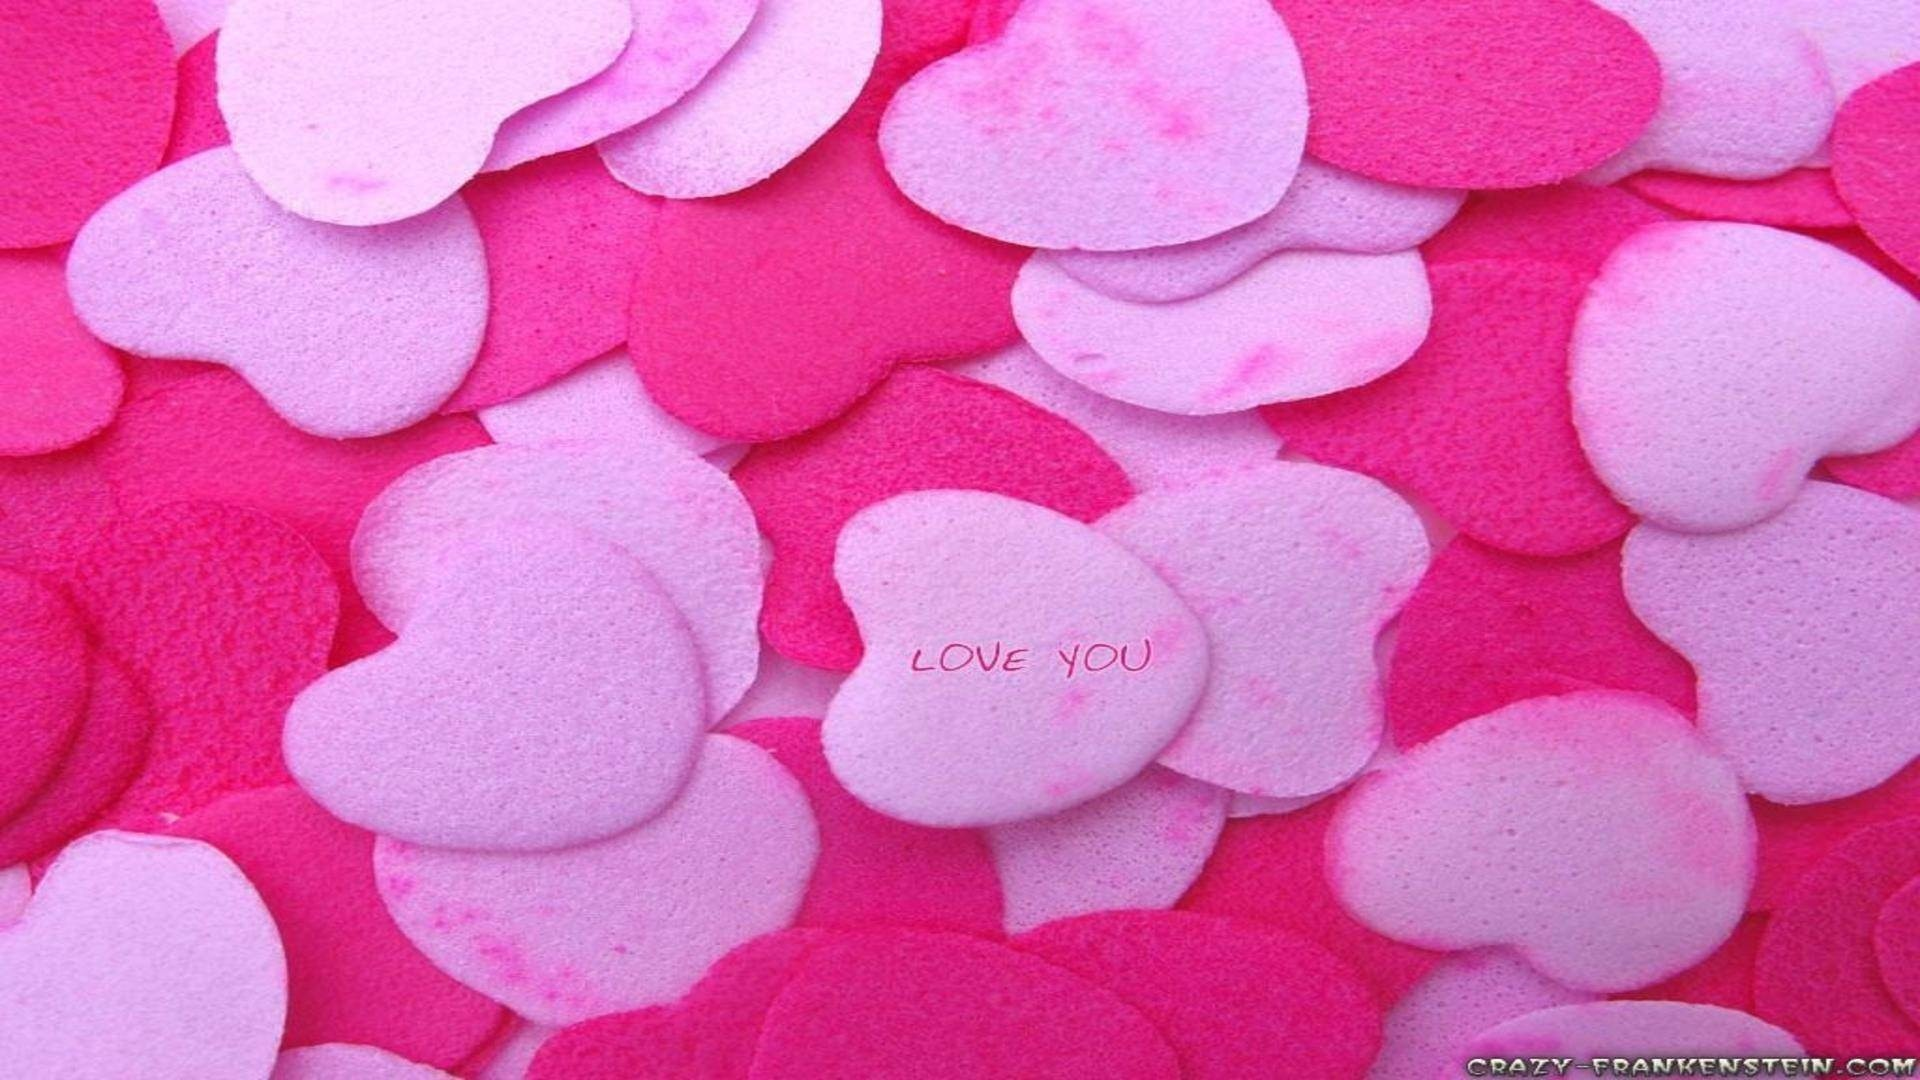 Wallpapers Backgrounds – Bunch pink red hearts love wallpapers desktop  background